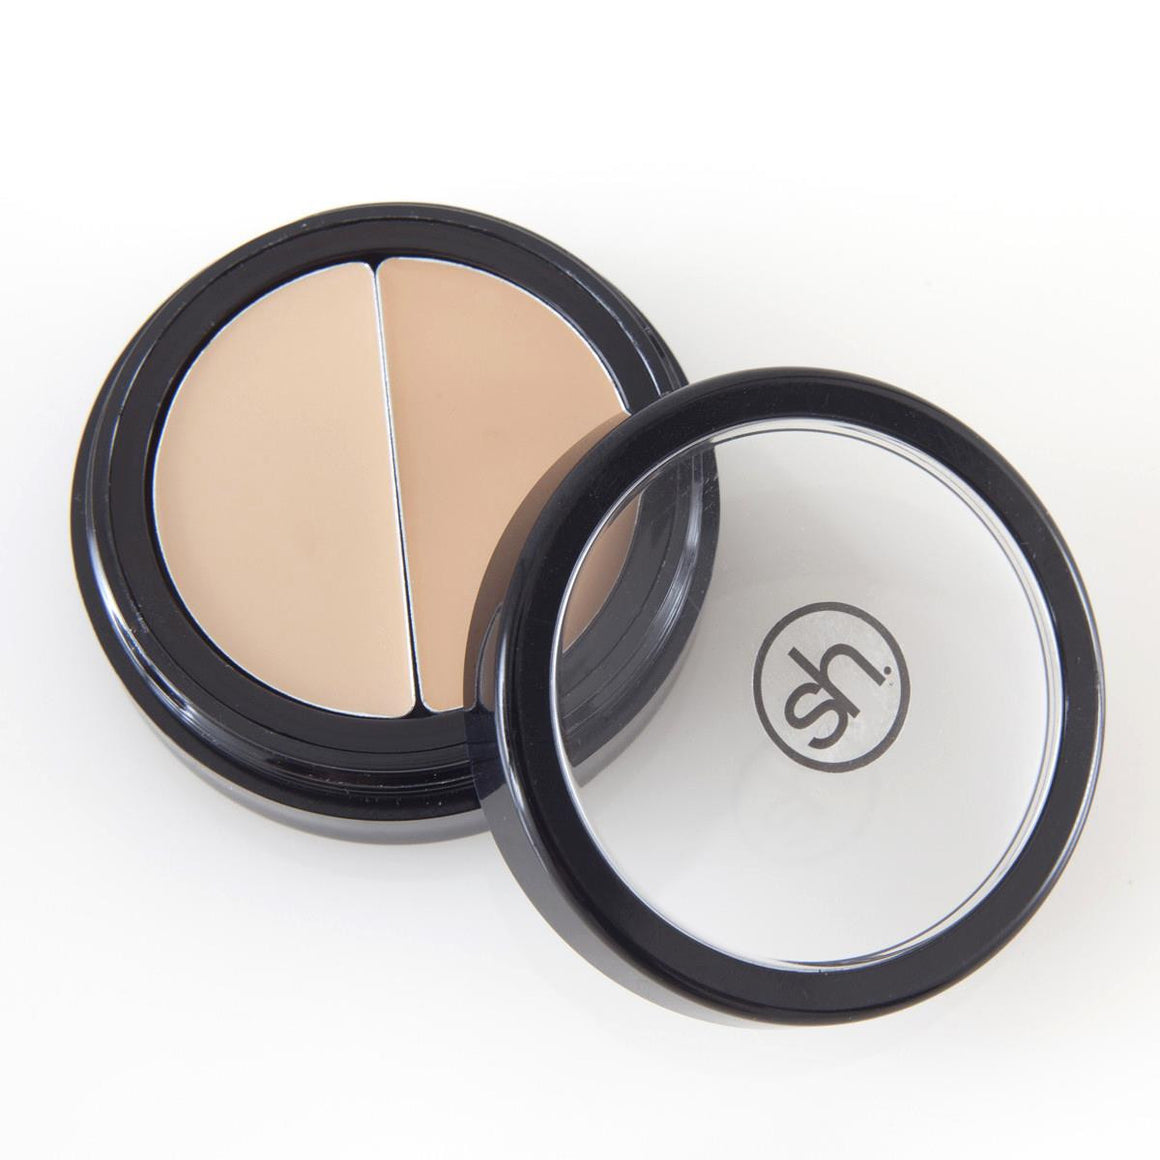 corrector duo concealer (full coverage)